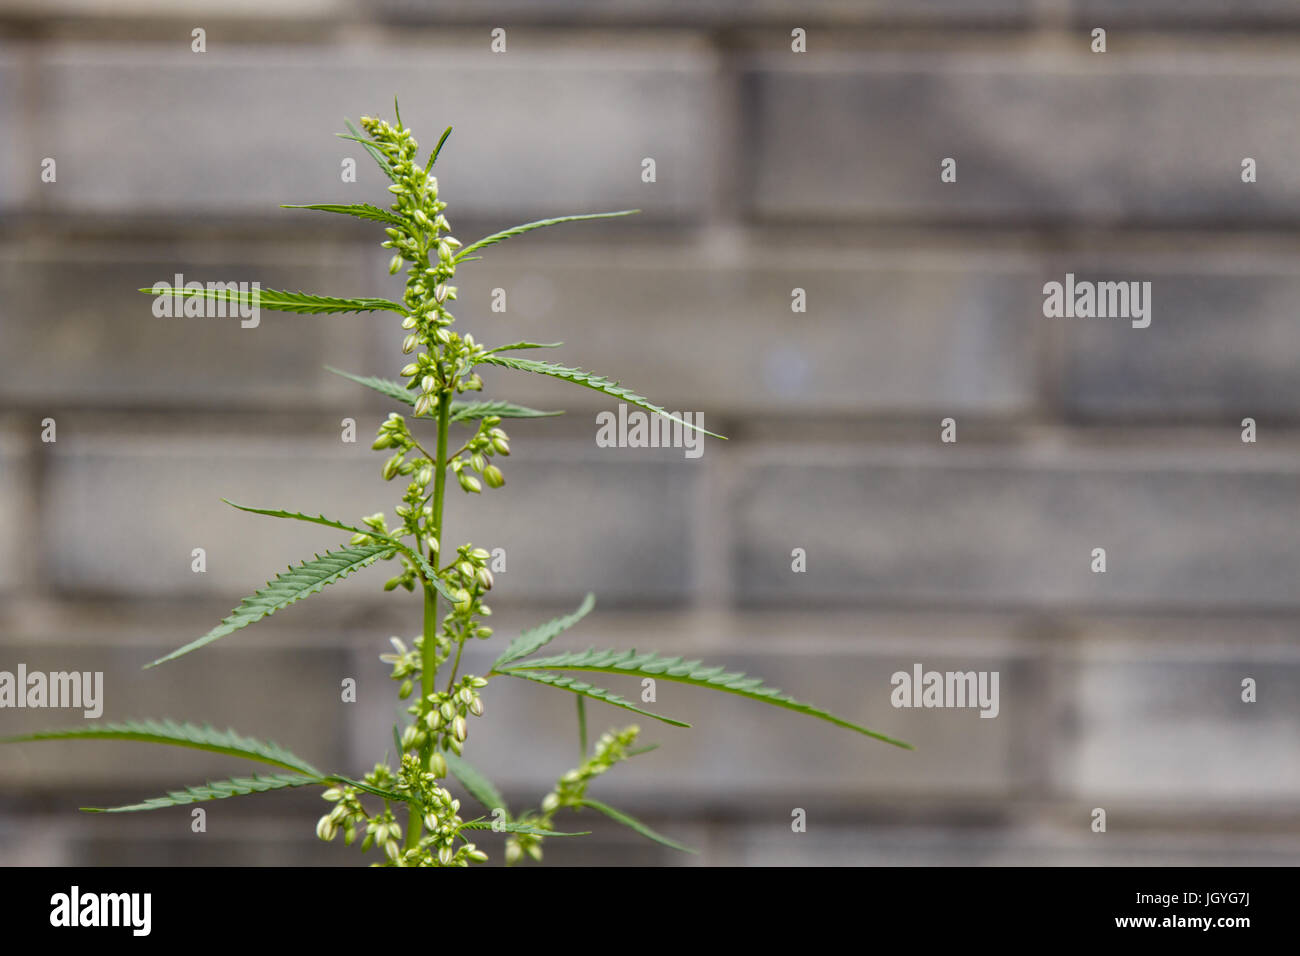 Cannabis on a gray background - Stock Image